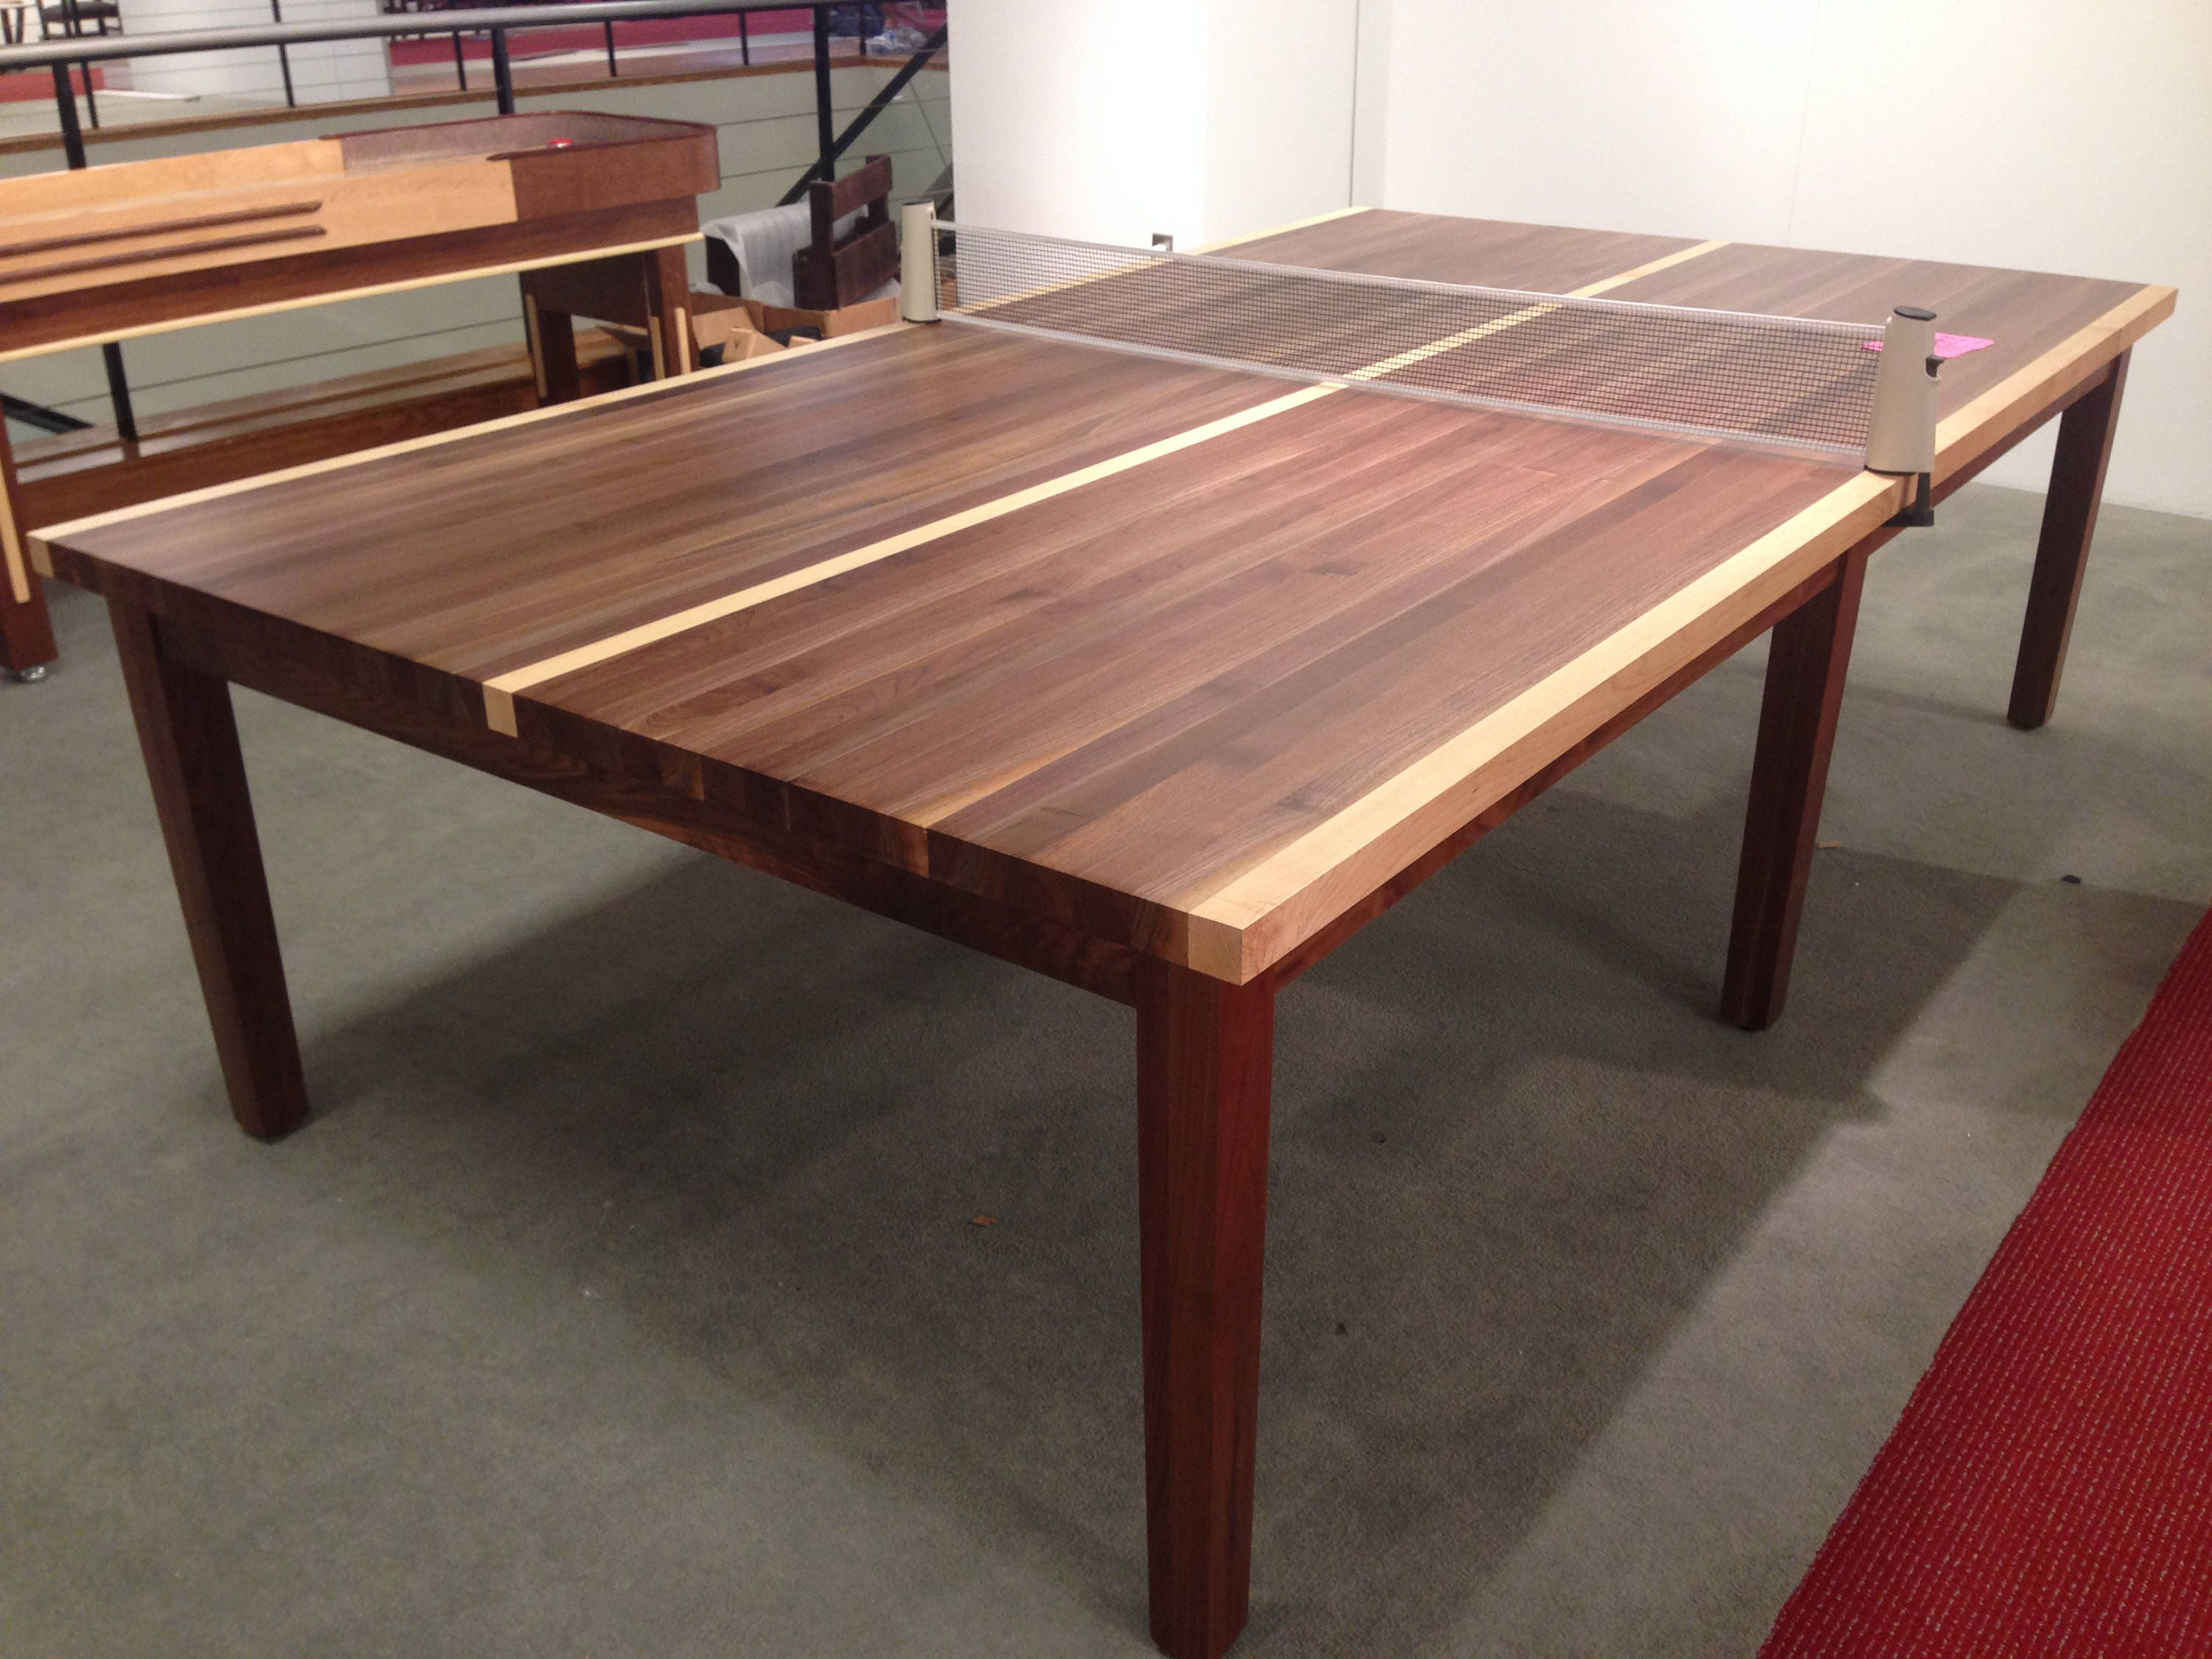 Bon Custom Wood Ping Pong Table Table Tennis Table Conference Table 2 In 1  Dining And Table Tennis Table With Retractable Net